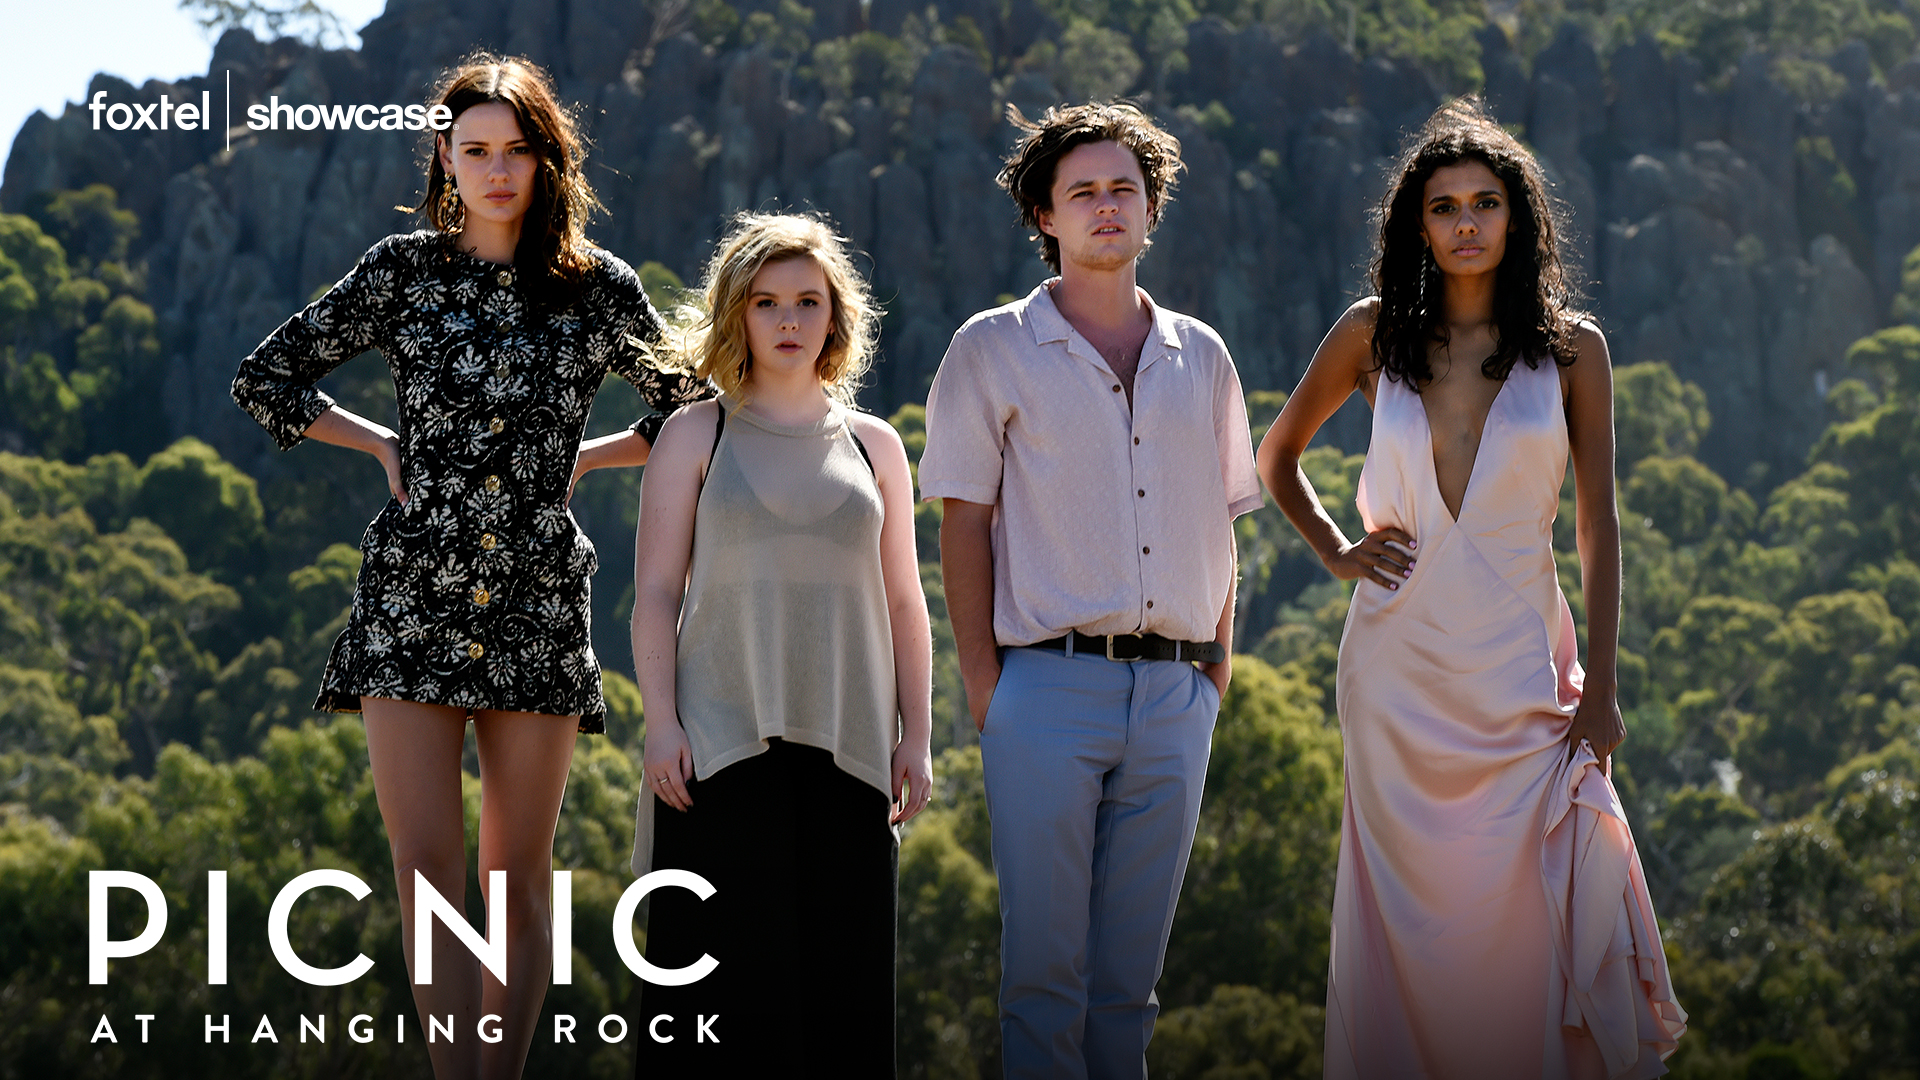 picnic at hanging rock The amazon series picnic at hanging rock is the sapphic, david lynch-influenced mystery-thriller that you didn't know you needed.